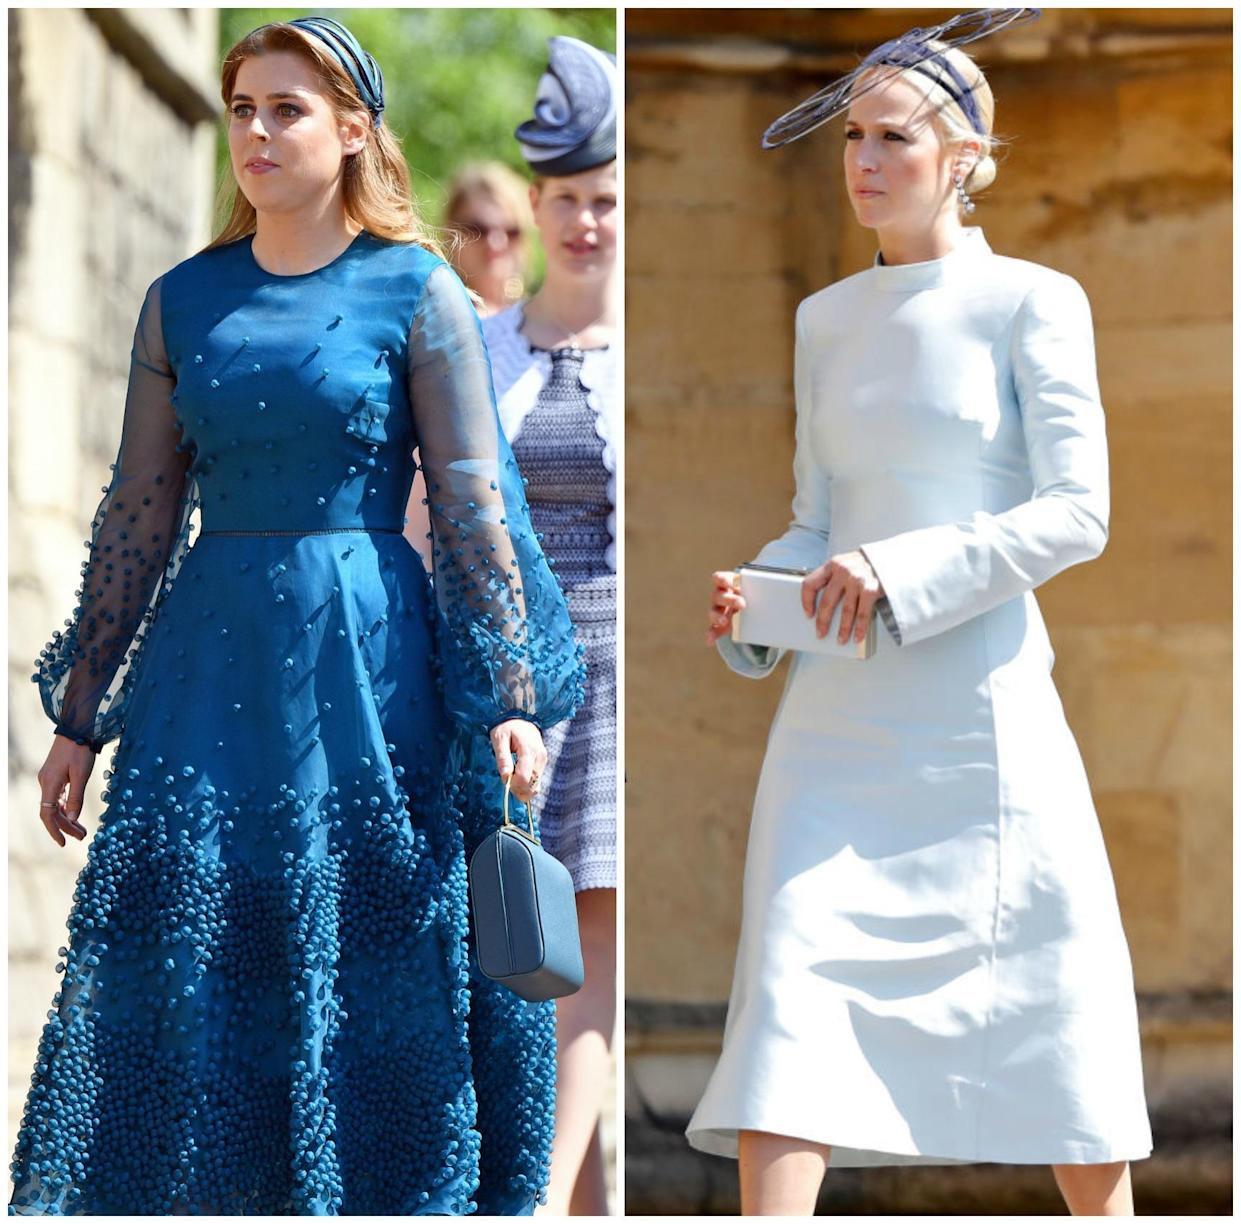 Harry and Meghan may also choose Harry's cousin, Princess Beatrice or fashion designer <span>Misha Nonoo.</span> [Source: Getty]